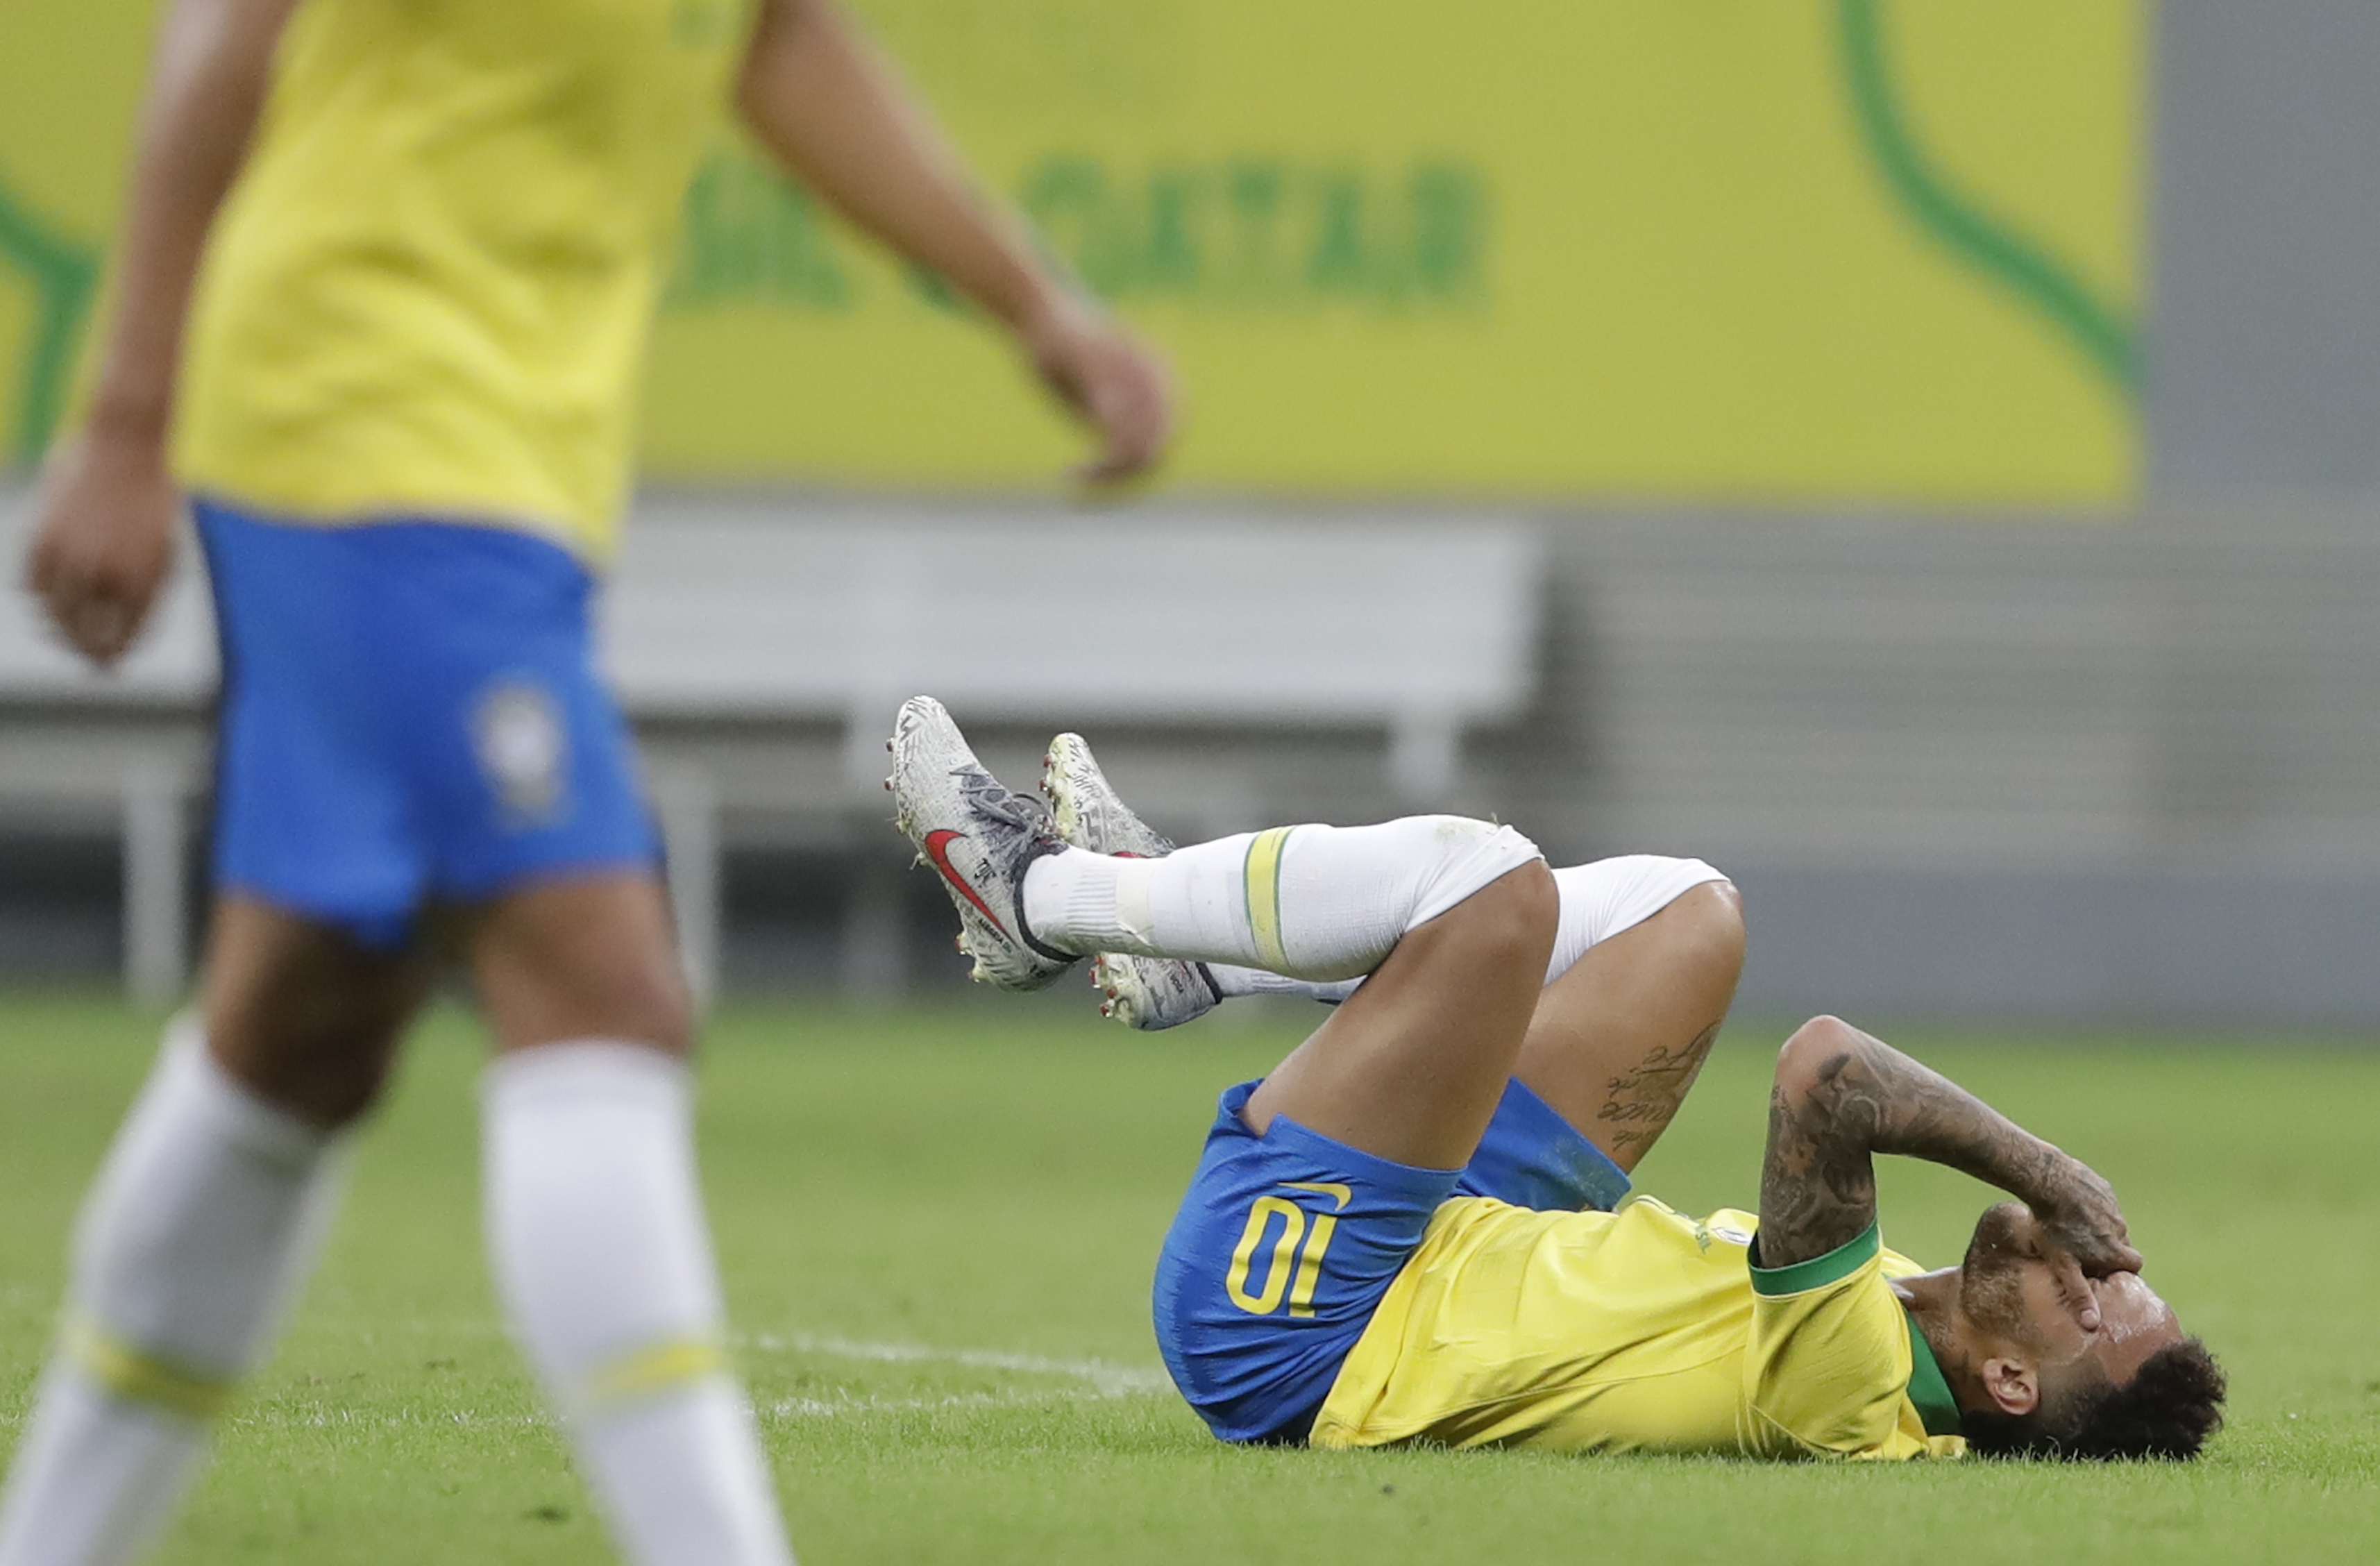 PSG says Neymar does not need surgery on injured right ankle